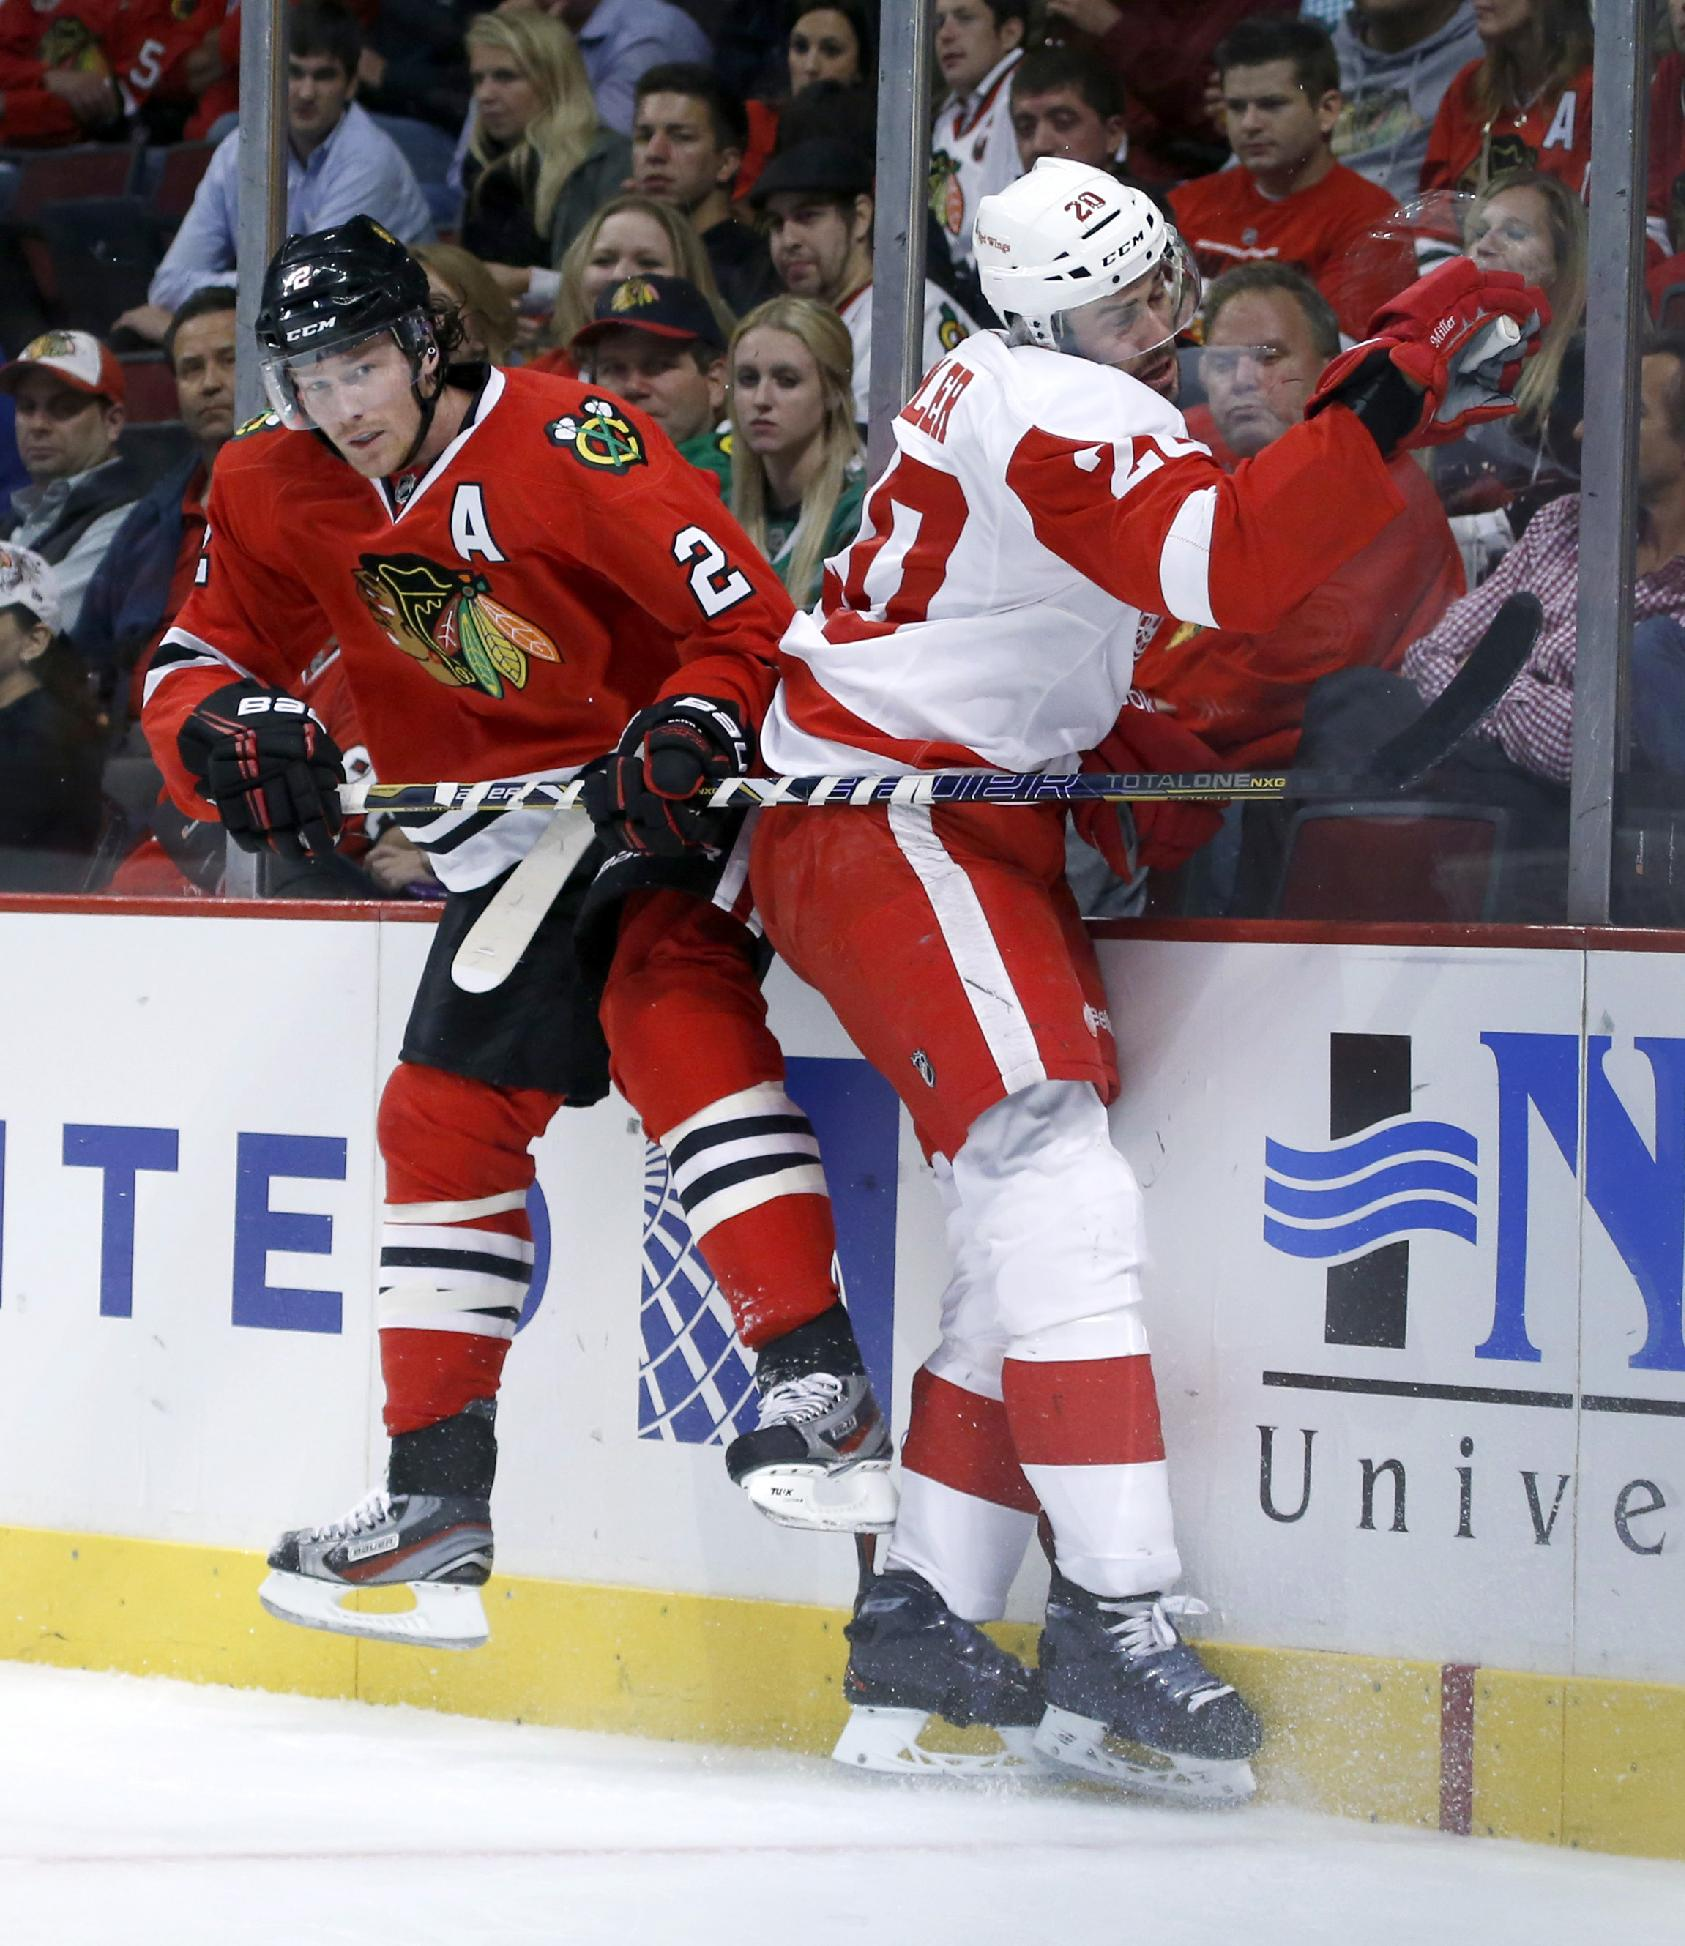 Chicago Blackhawks defenseman Duncan Keith, left, checks Detroit Red Wings left wing Drew Miller into the boards during the first period of an NHL preseason hockey game Tuesday, Sept. 17, 2013, in Chicago